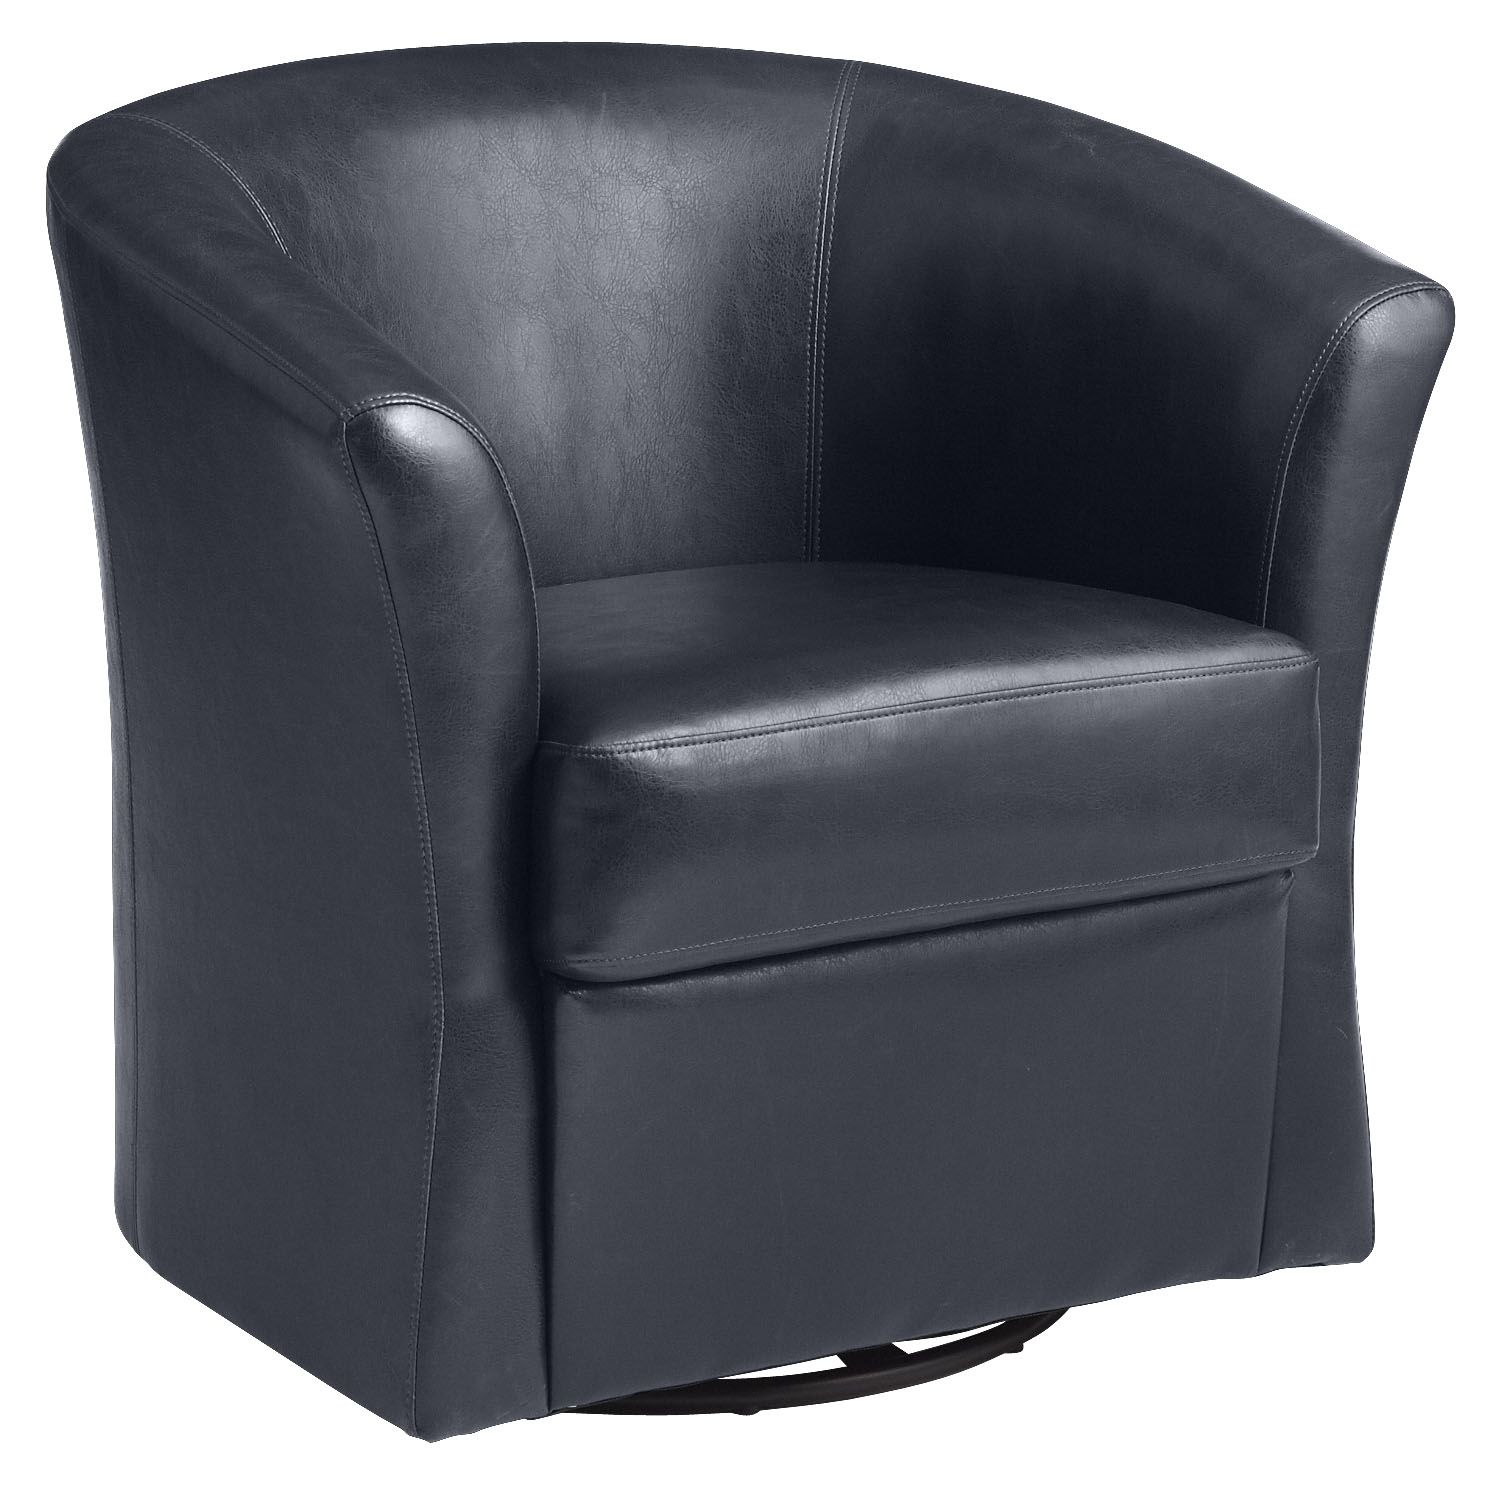 Isaac Swivel Chair Navy Leather Leather chair with